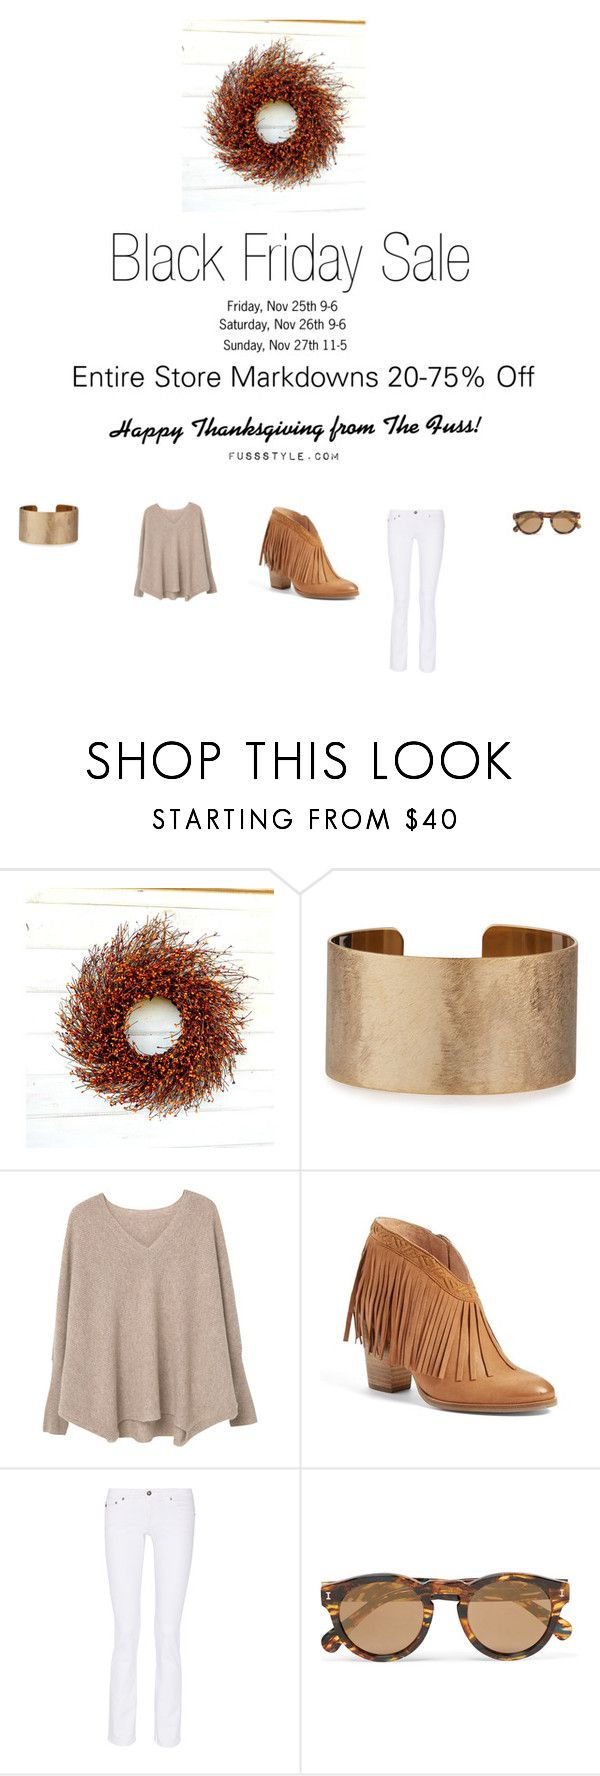 Black Friday 2016 by laurenspring-1 on Polyvore featuring MANGO, AG Adriano Goldschmied, Seychelles, Panacea and Illesteva